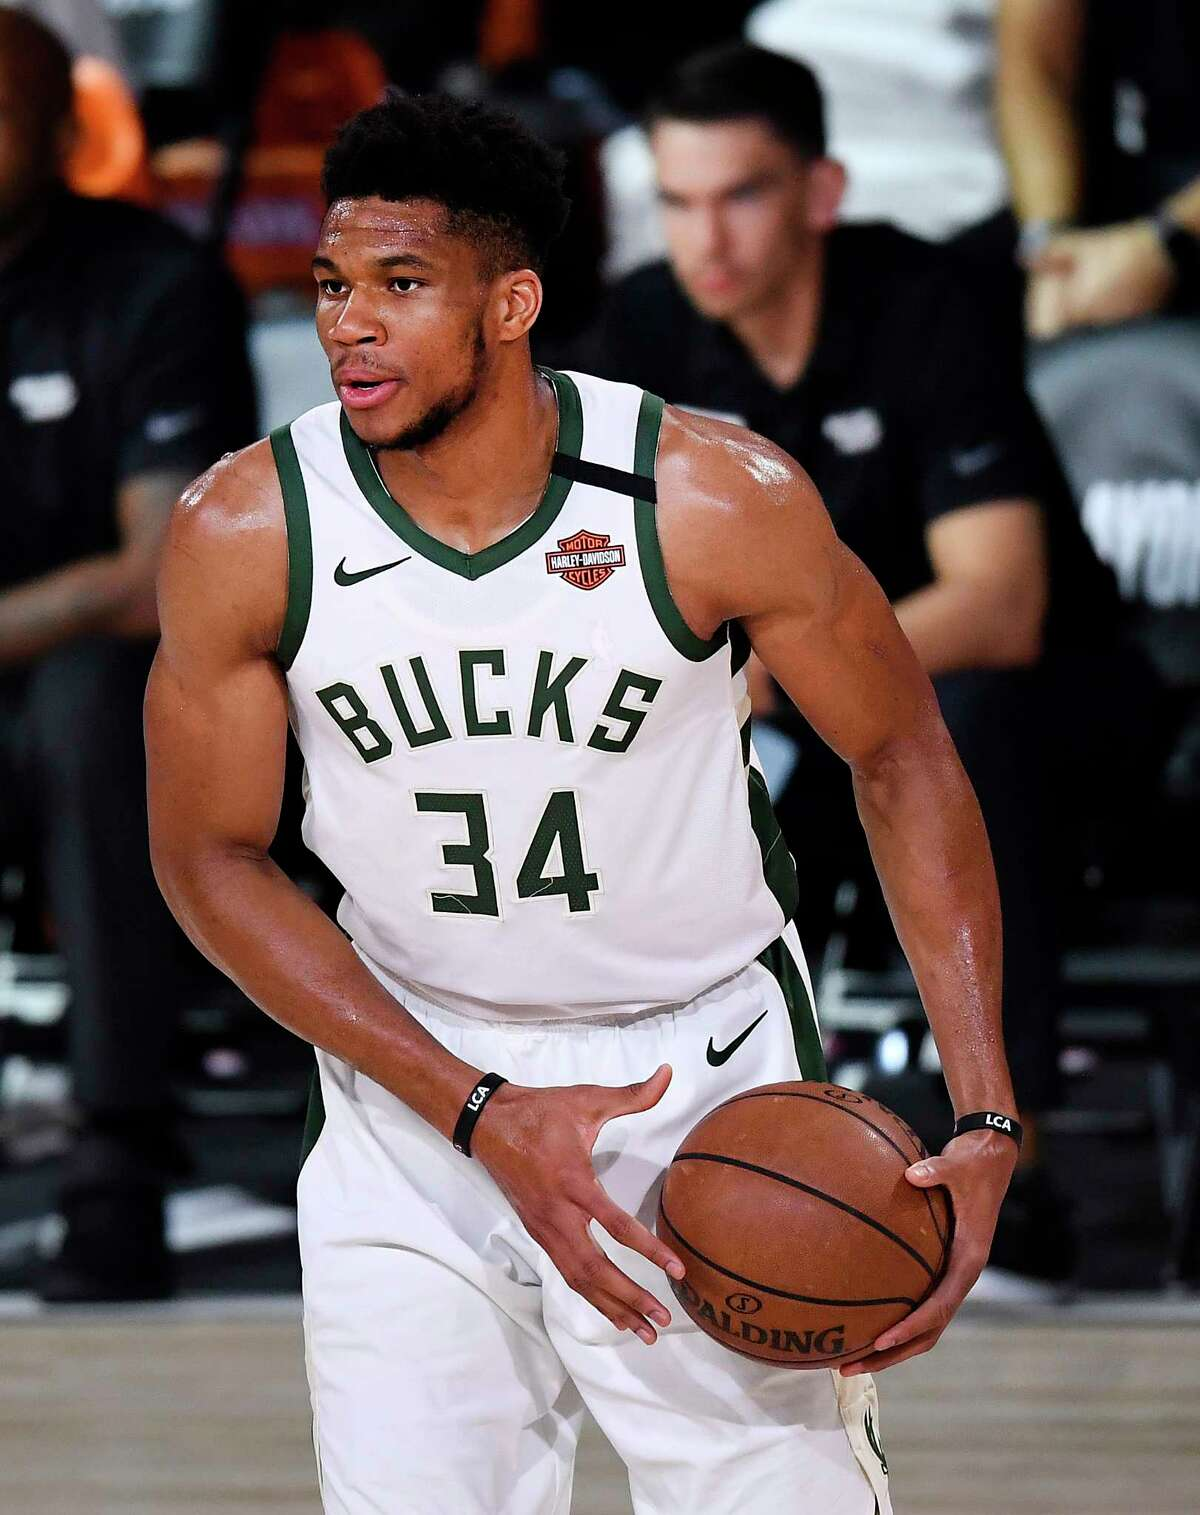 LAKE BUENA VISTA, FLORIDA - SEPTEMBER 06: Giannis Antetokounmpo #34 of the Milwaukee Bucks handles the ball during the first quarter against the Miami Heat in Game Four of the Eastern Conference Second Round during the 2020 NBA Playoffs at AdventHealth Arena at the ESPN Wide World Of Sports Complex on September 06, 2020 in Lake Buena Vista, Florida. NOTE TO USER: User expressly acknowledges and agrees that, by downloading and or using this photograph, User is consenting to the terms and conditions of the Getty Images License Agreement. (Photo by Douglas P. DeFelice/Getty Images)